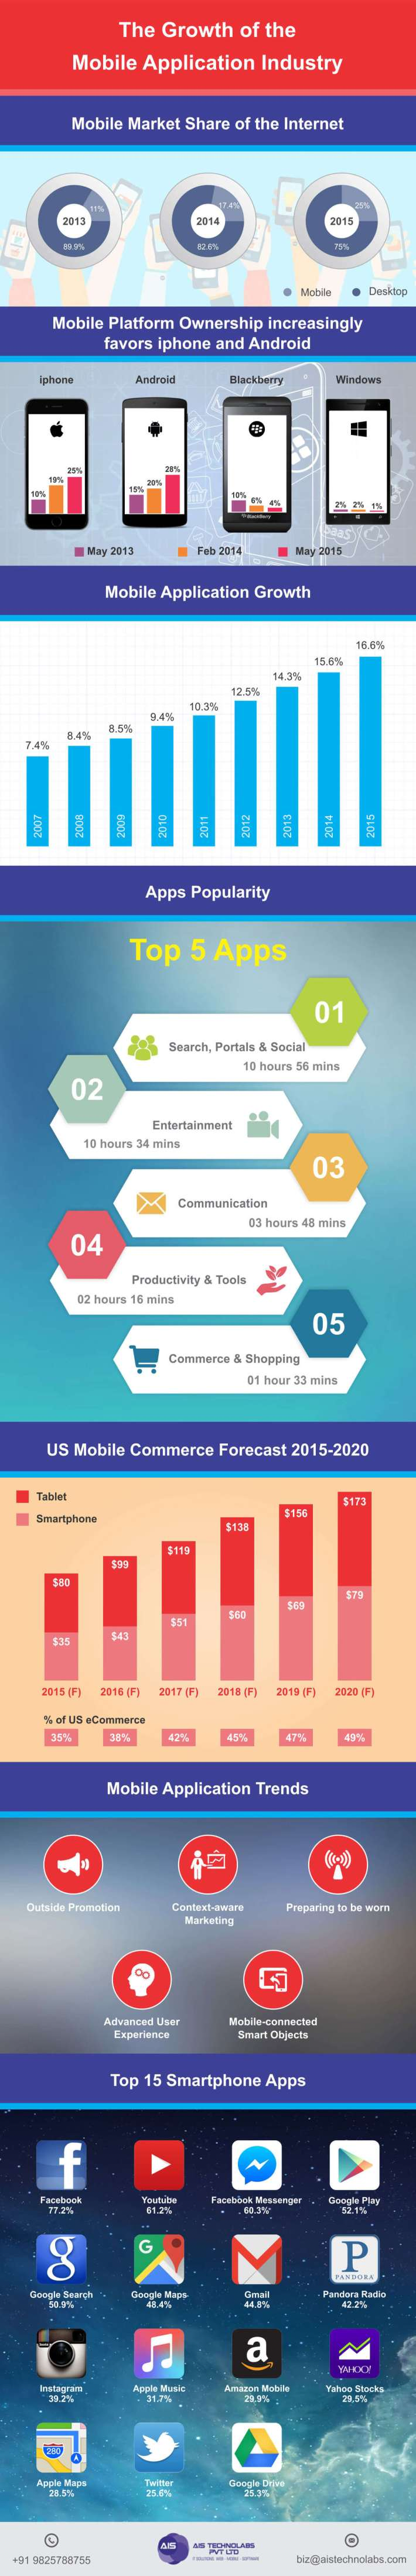 The Growth of the Mobile Application Industry